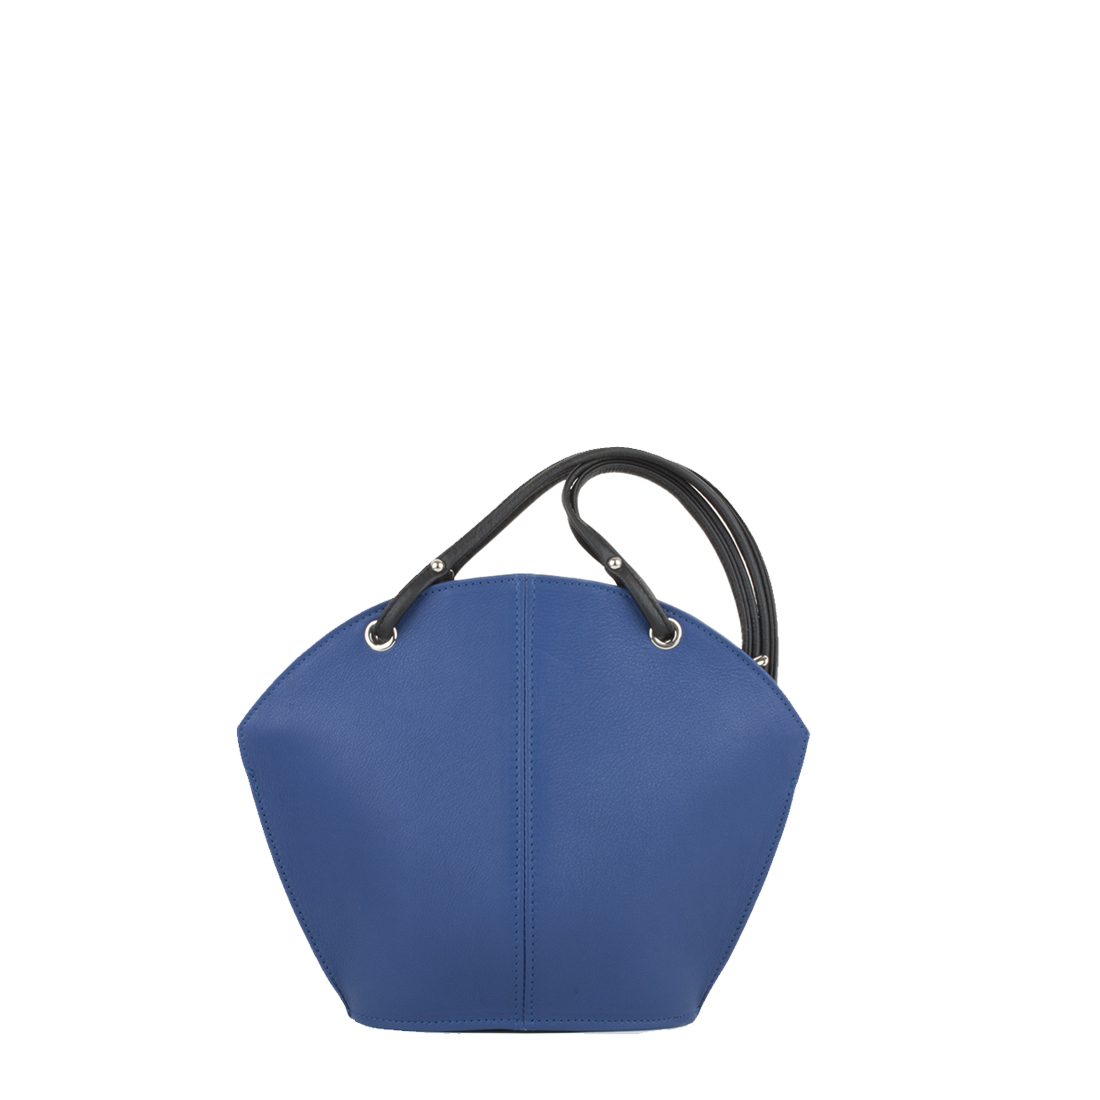 Ava Blue Leather Shoulder Bag